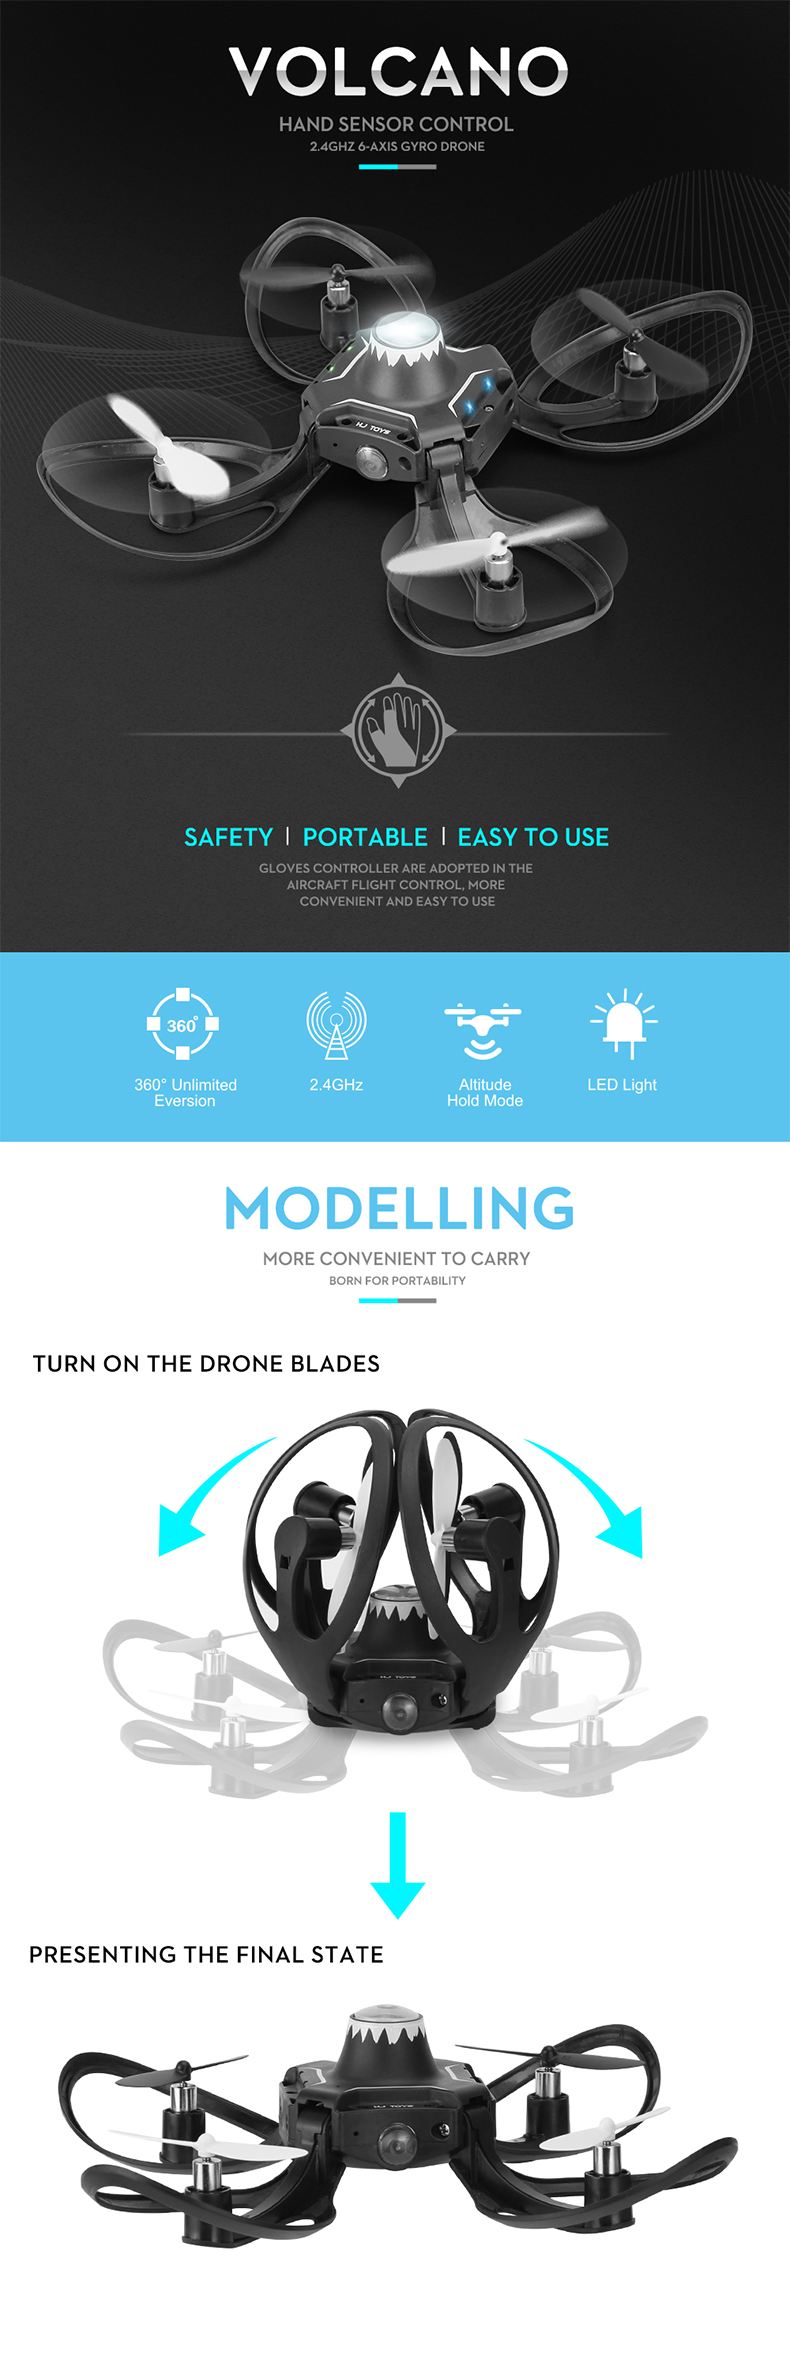 TongLi toy professional GESTURE drone portable mini rc quadcopter remote control drone with LED light six-axis altitude hold